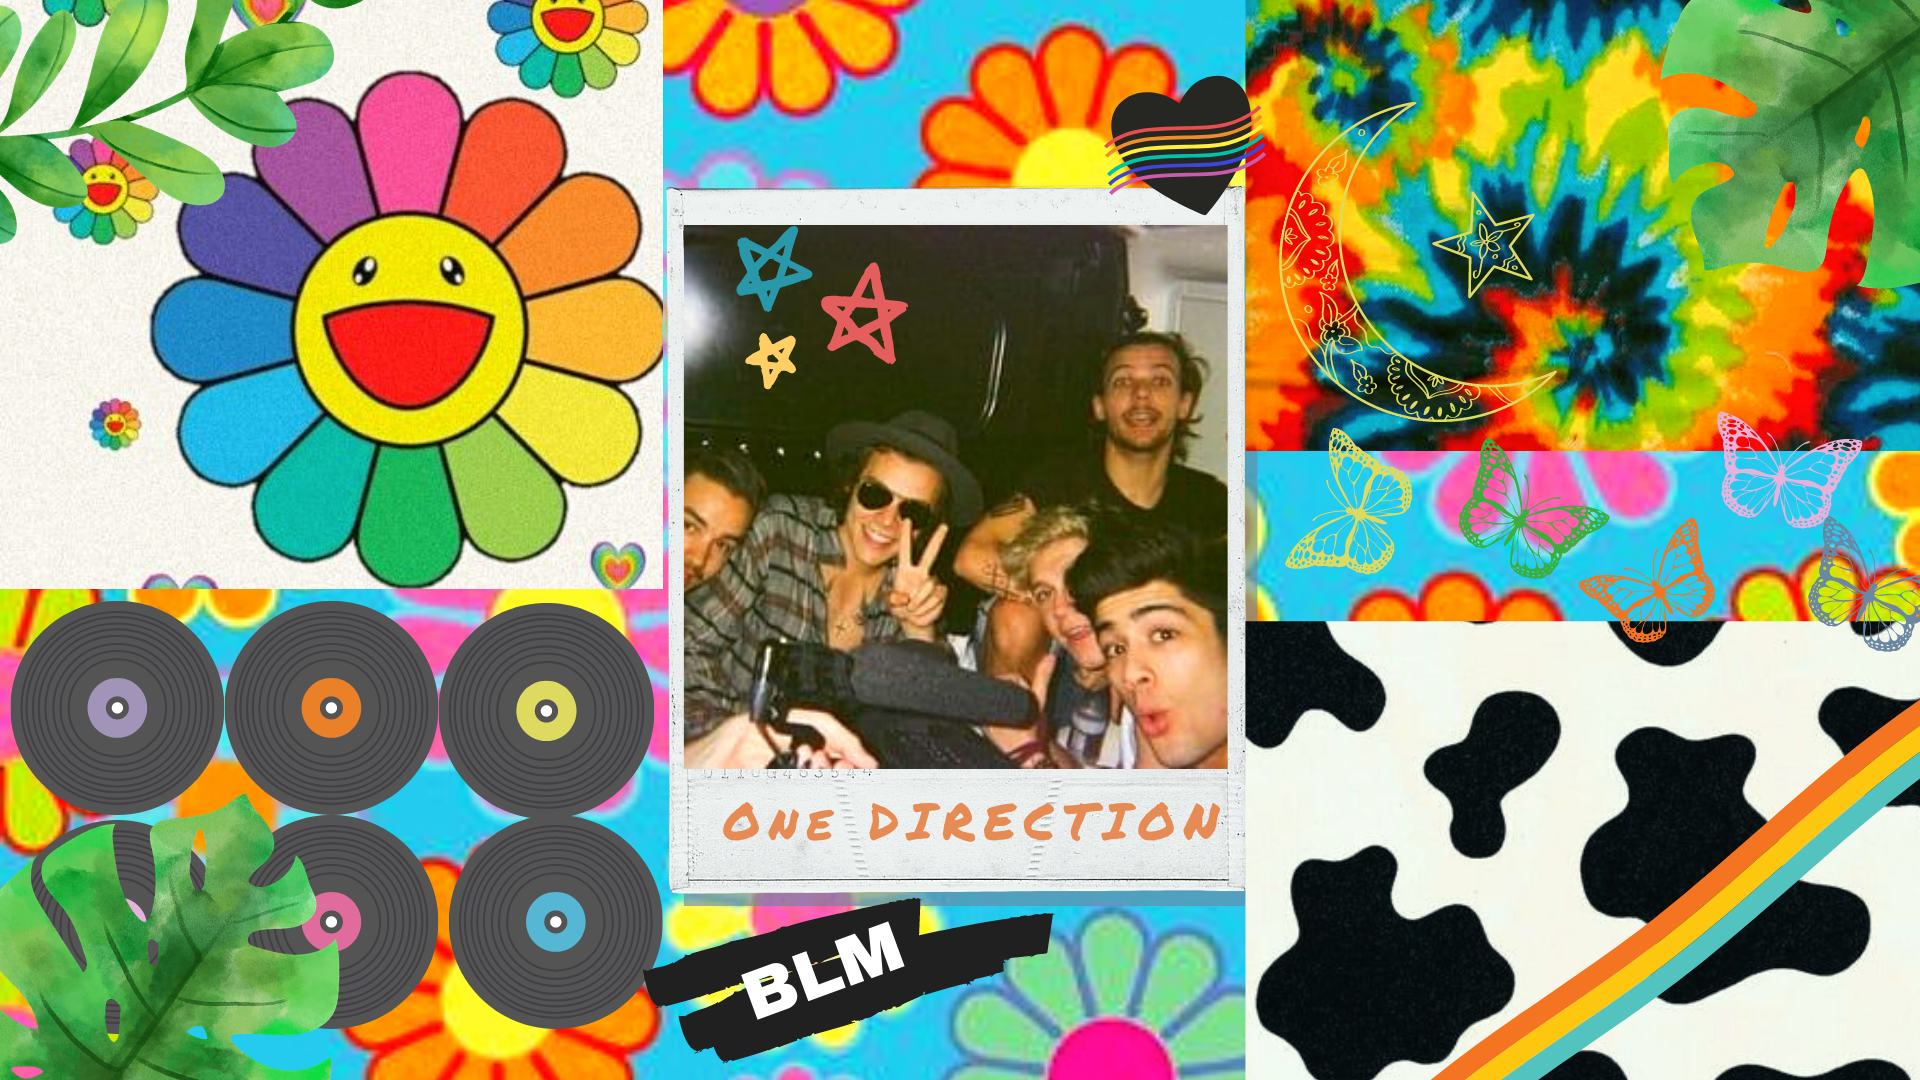 Indie One Direction Wallpaper One Direction Wallpaper One Direction Collage Aesthetic Iphone Wallpaper